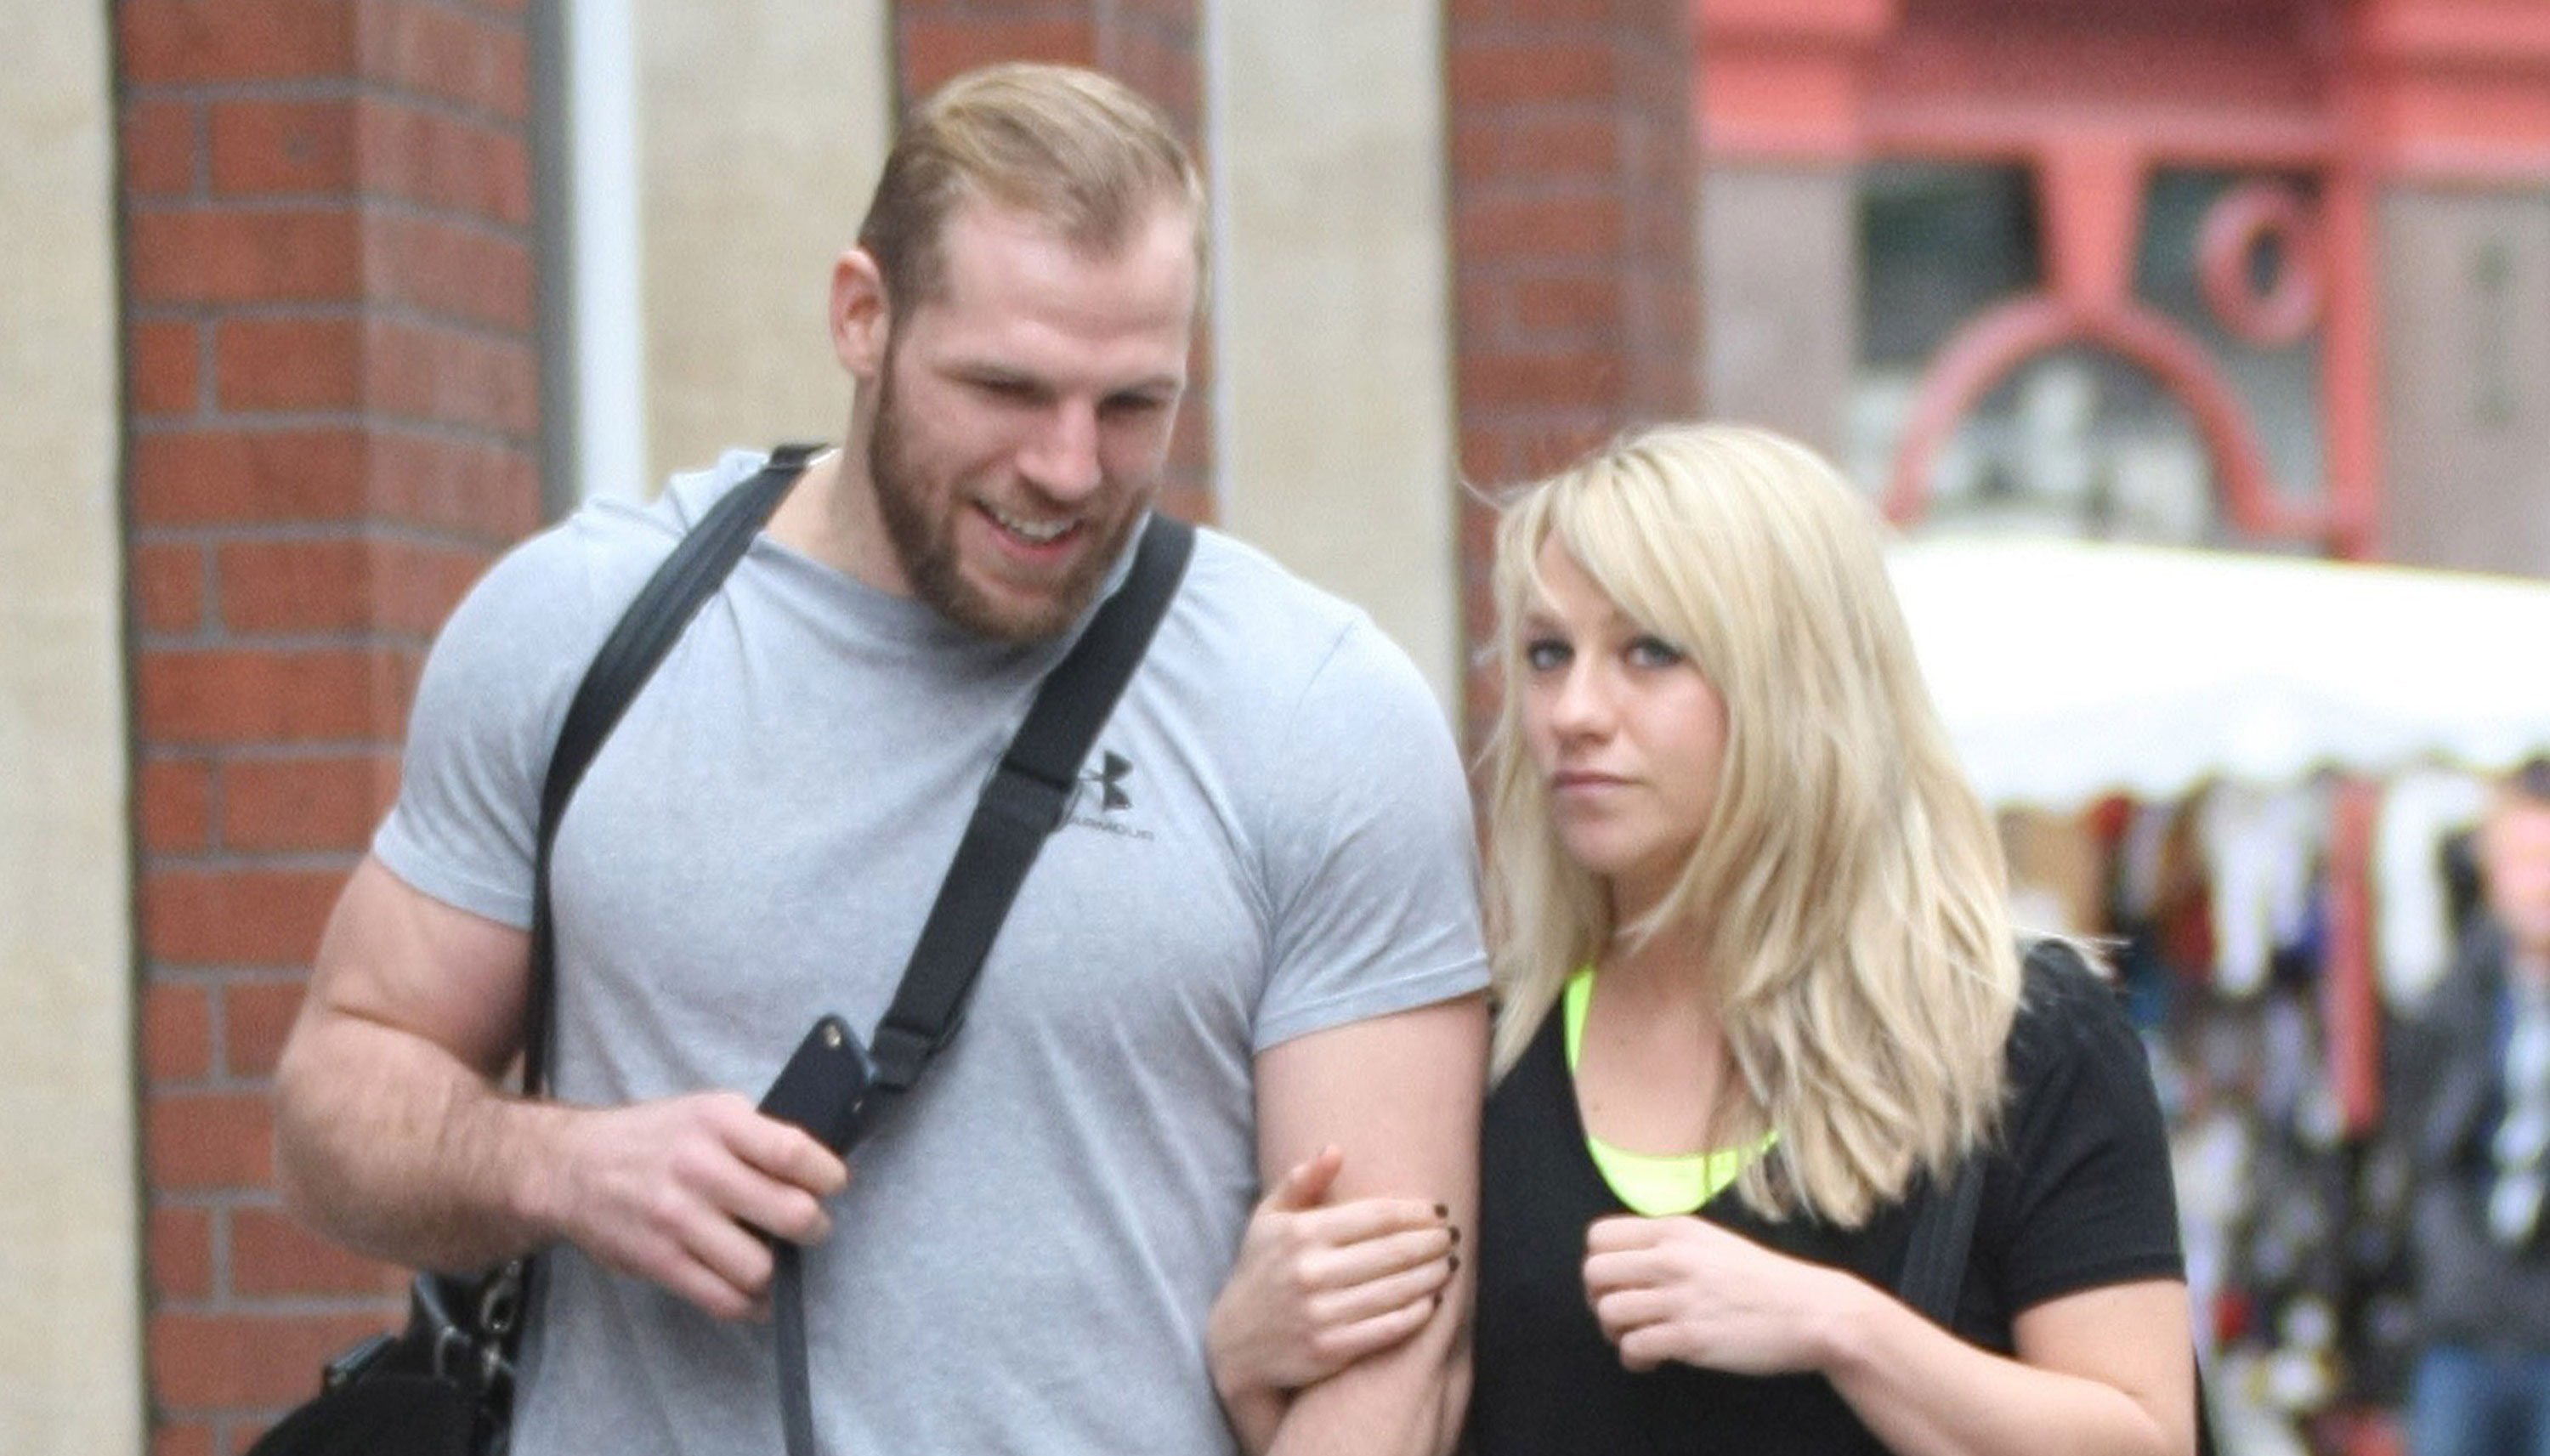 I'm A Celebrity: Chloe Madeley's warning to fans over James Haskell